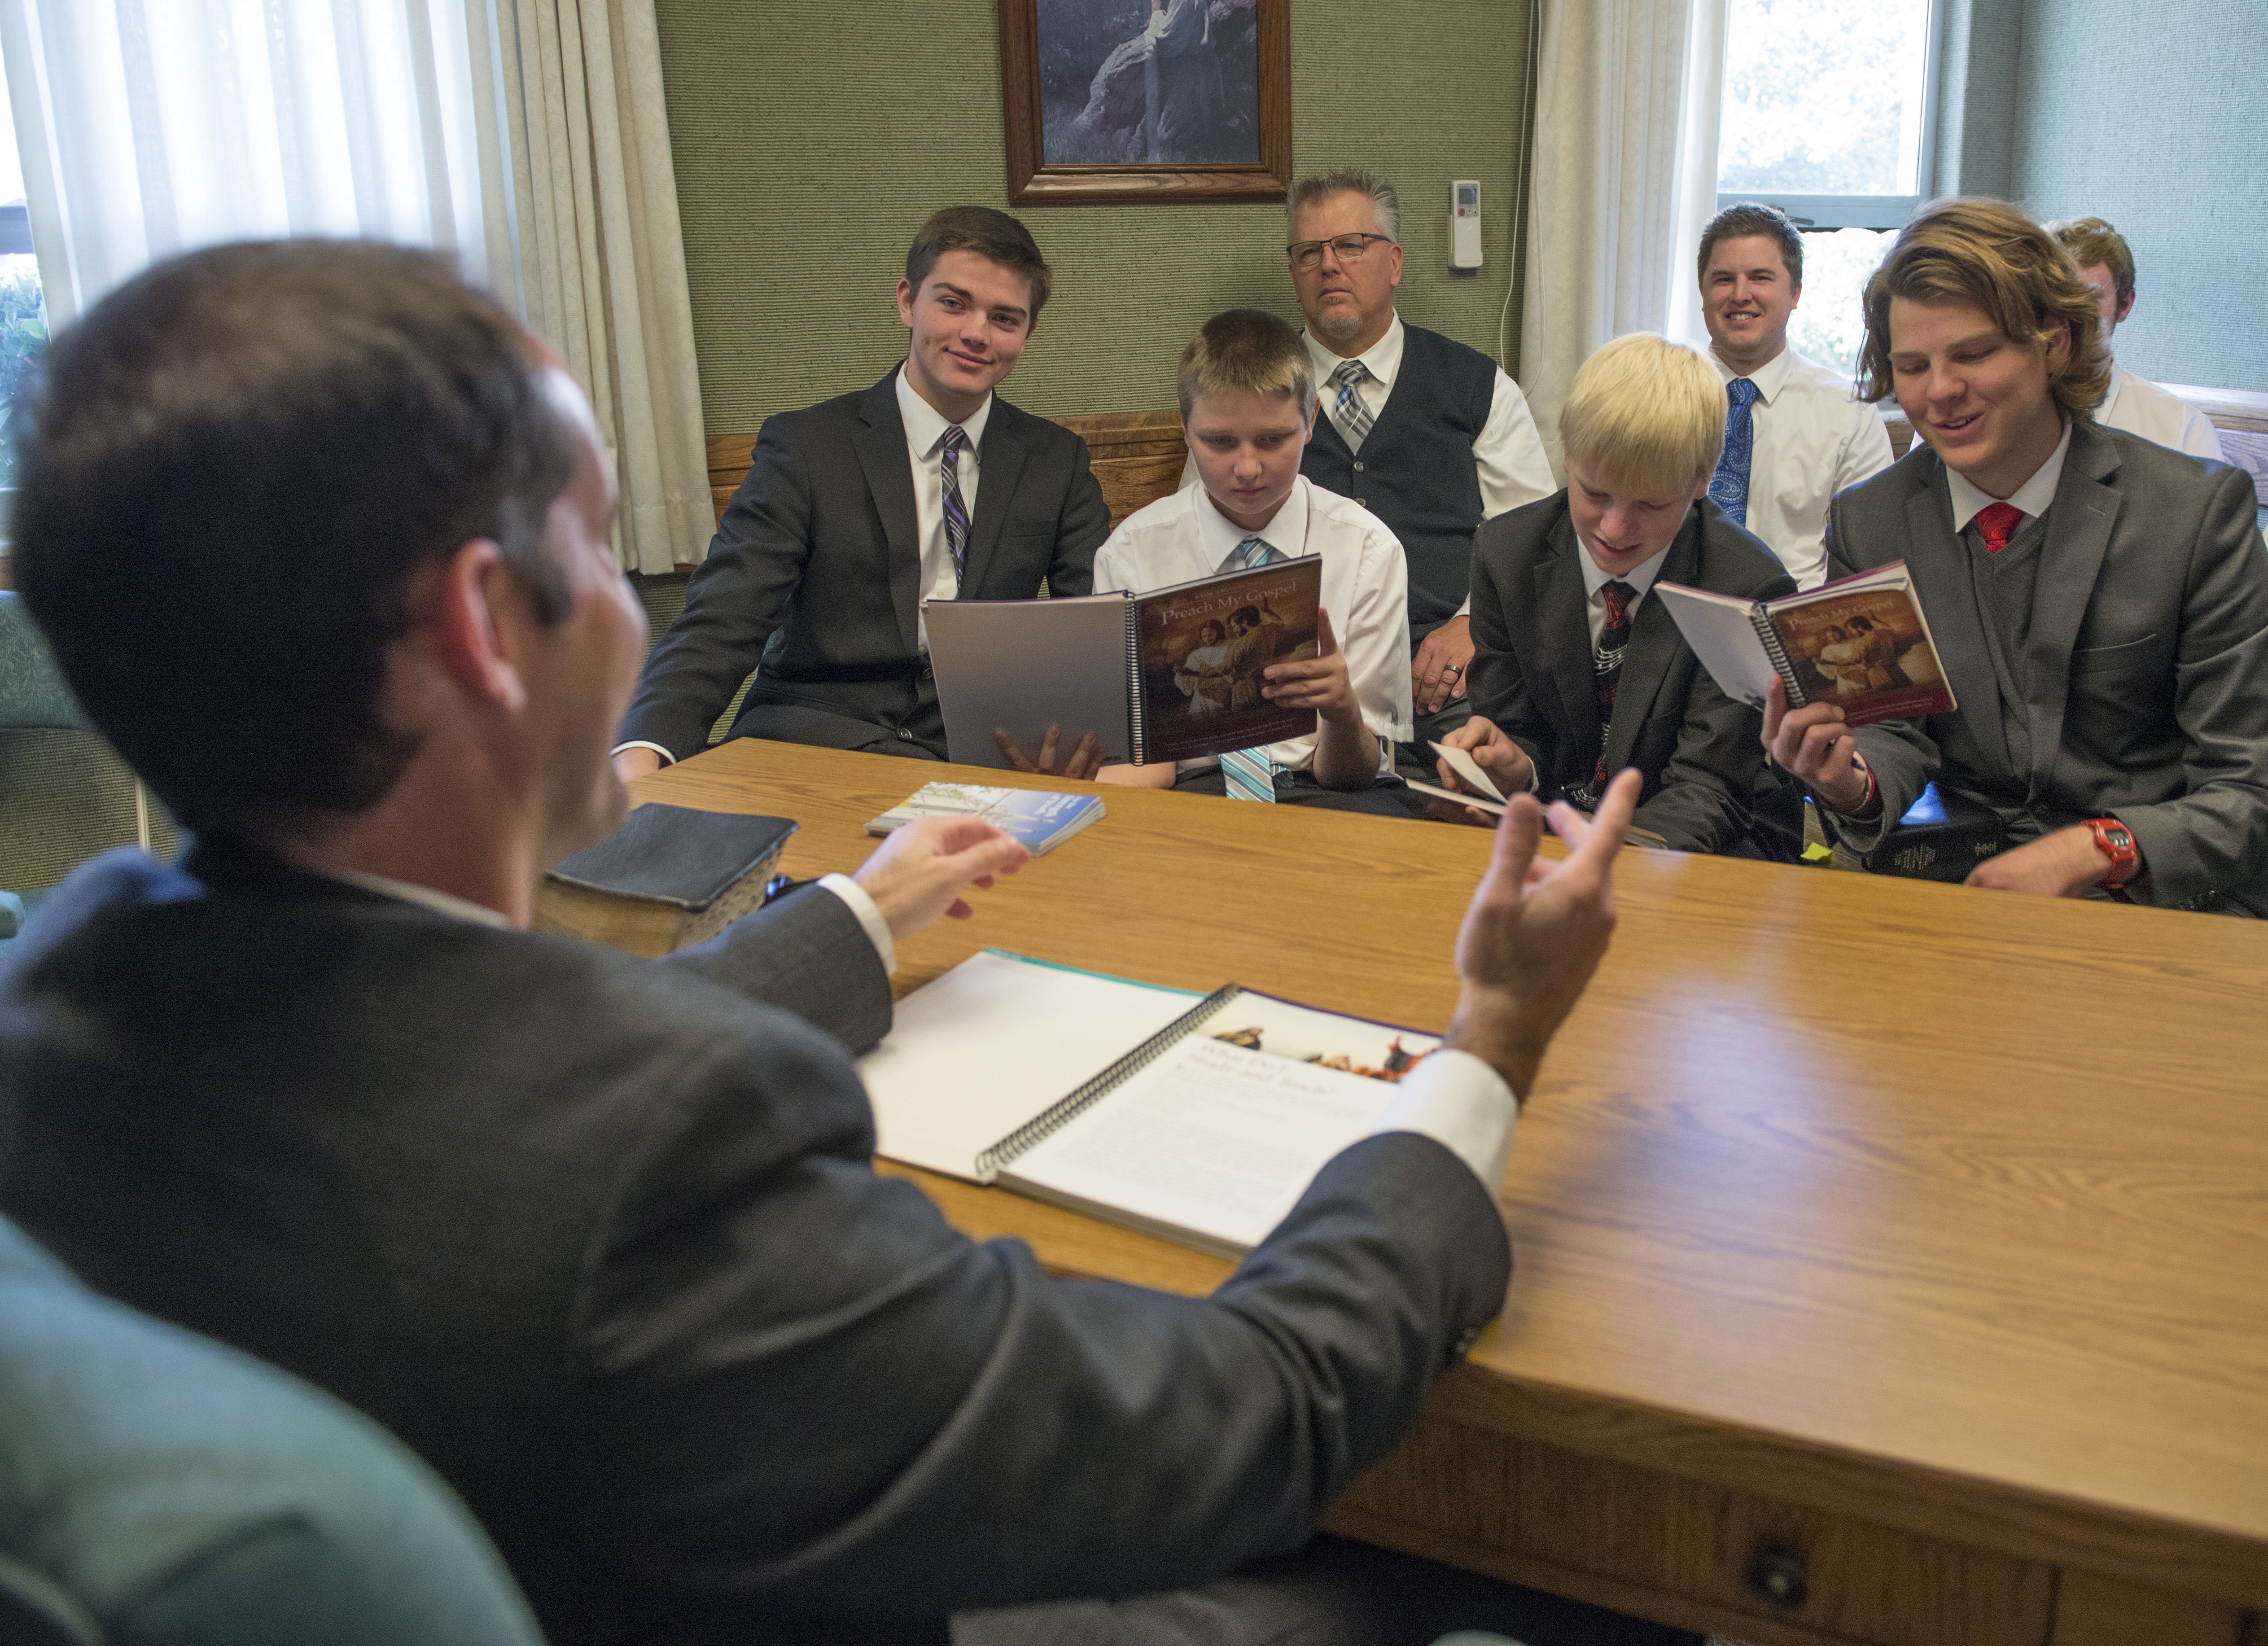 The bishop meets with young men. As President Russell M. Nelson emphasized in the October general conference, the primary responsibility of a bishop is to care for the youth.